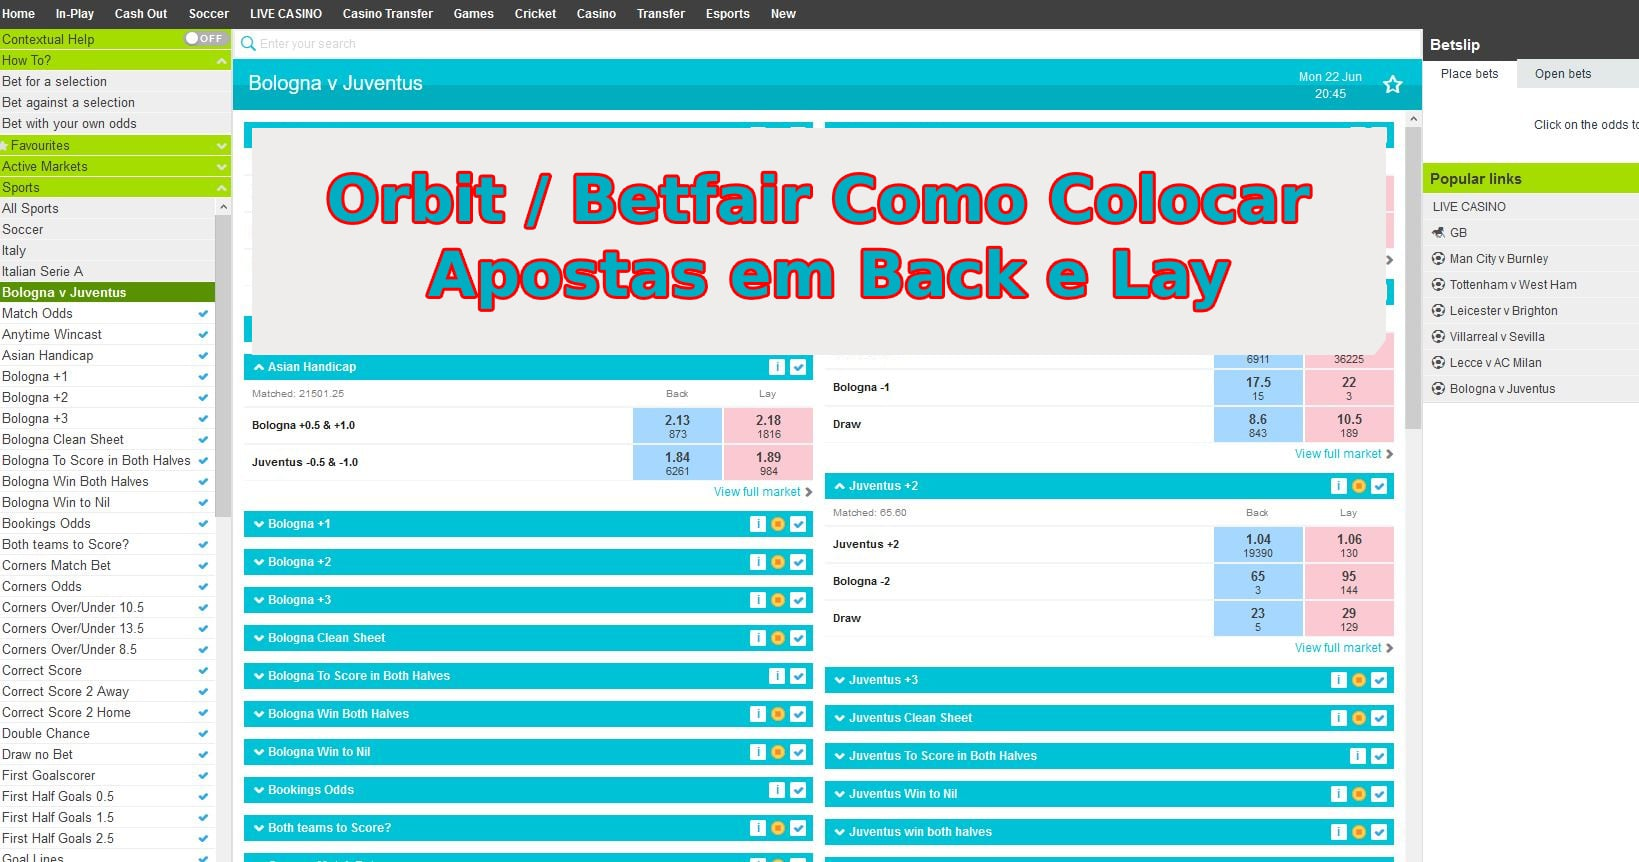 Orbit Betfair Como Colocar Apostas em Back e Lay - 2